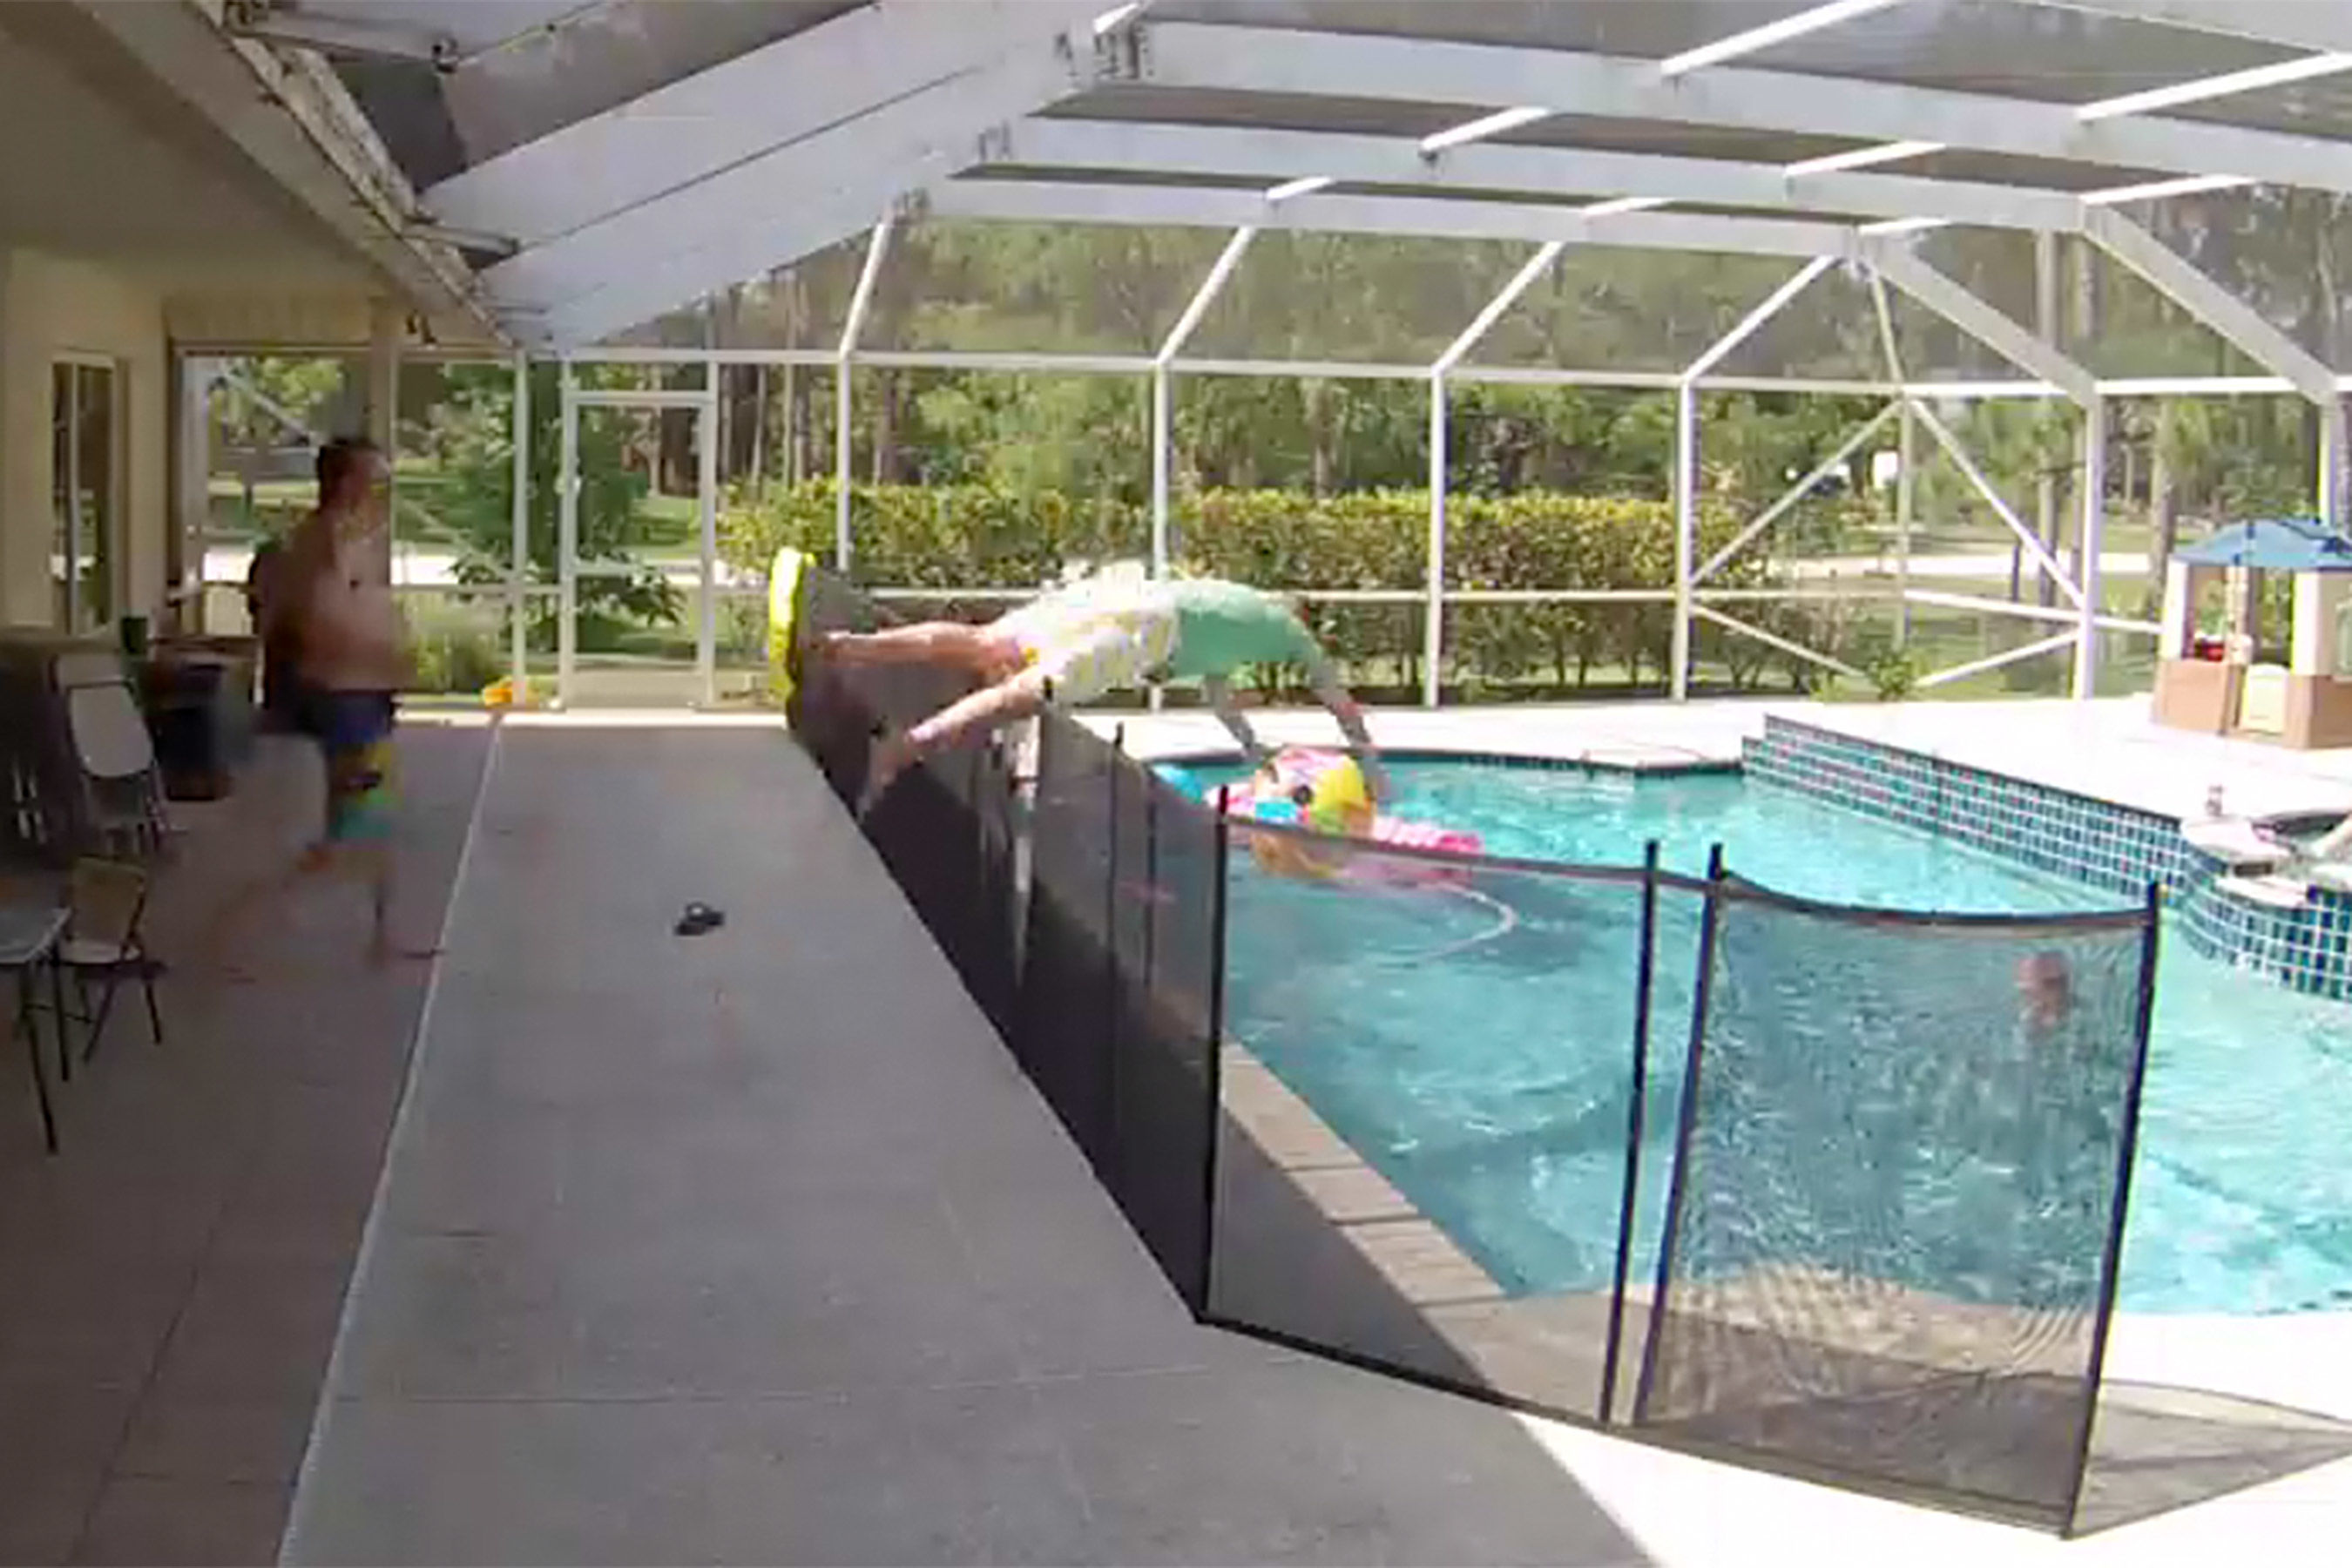 Florida Dad Jumps Over 4-Foot Fence to Save 1-Year-Old Son from Drowning in Backyard Pool